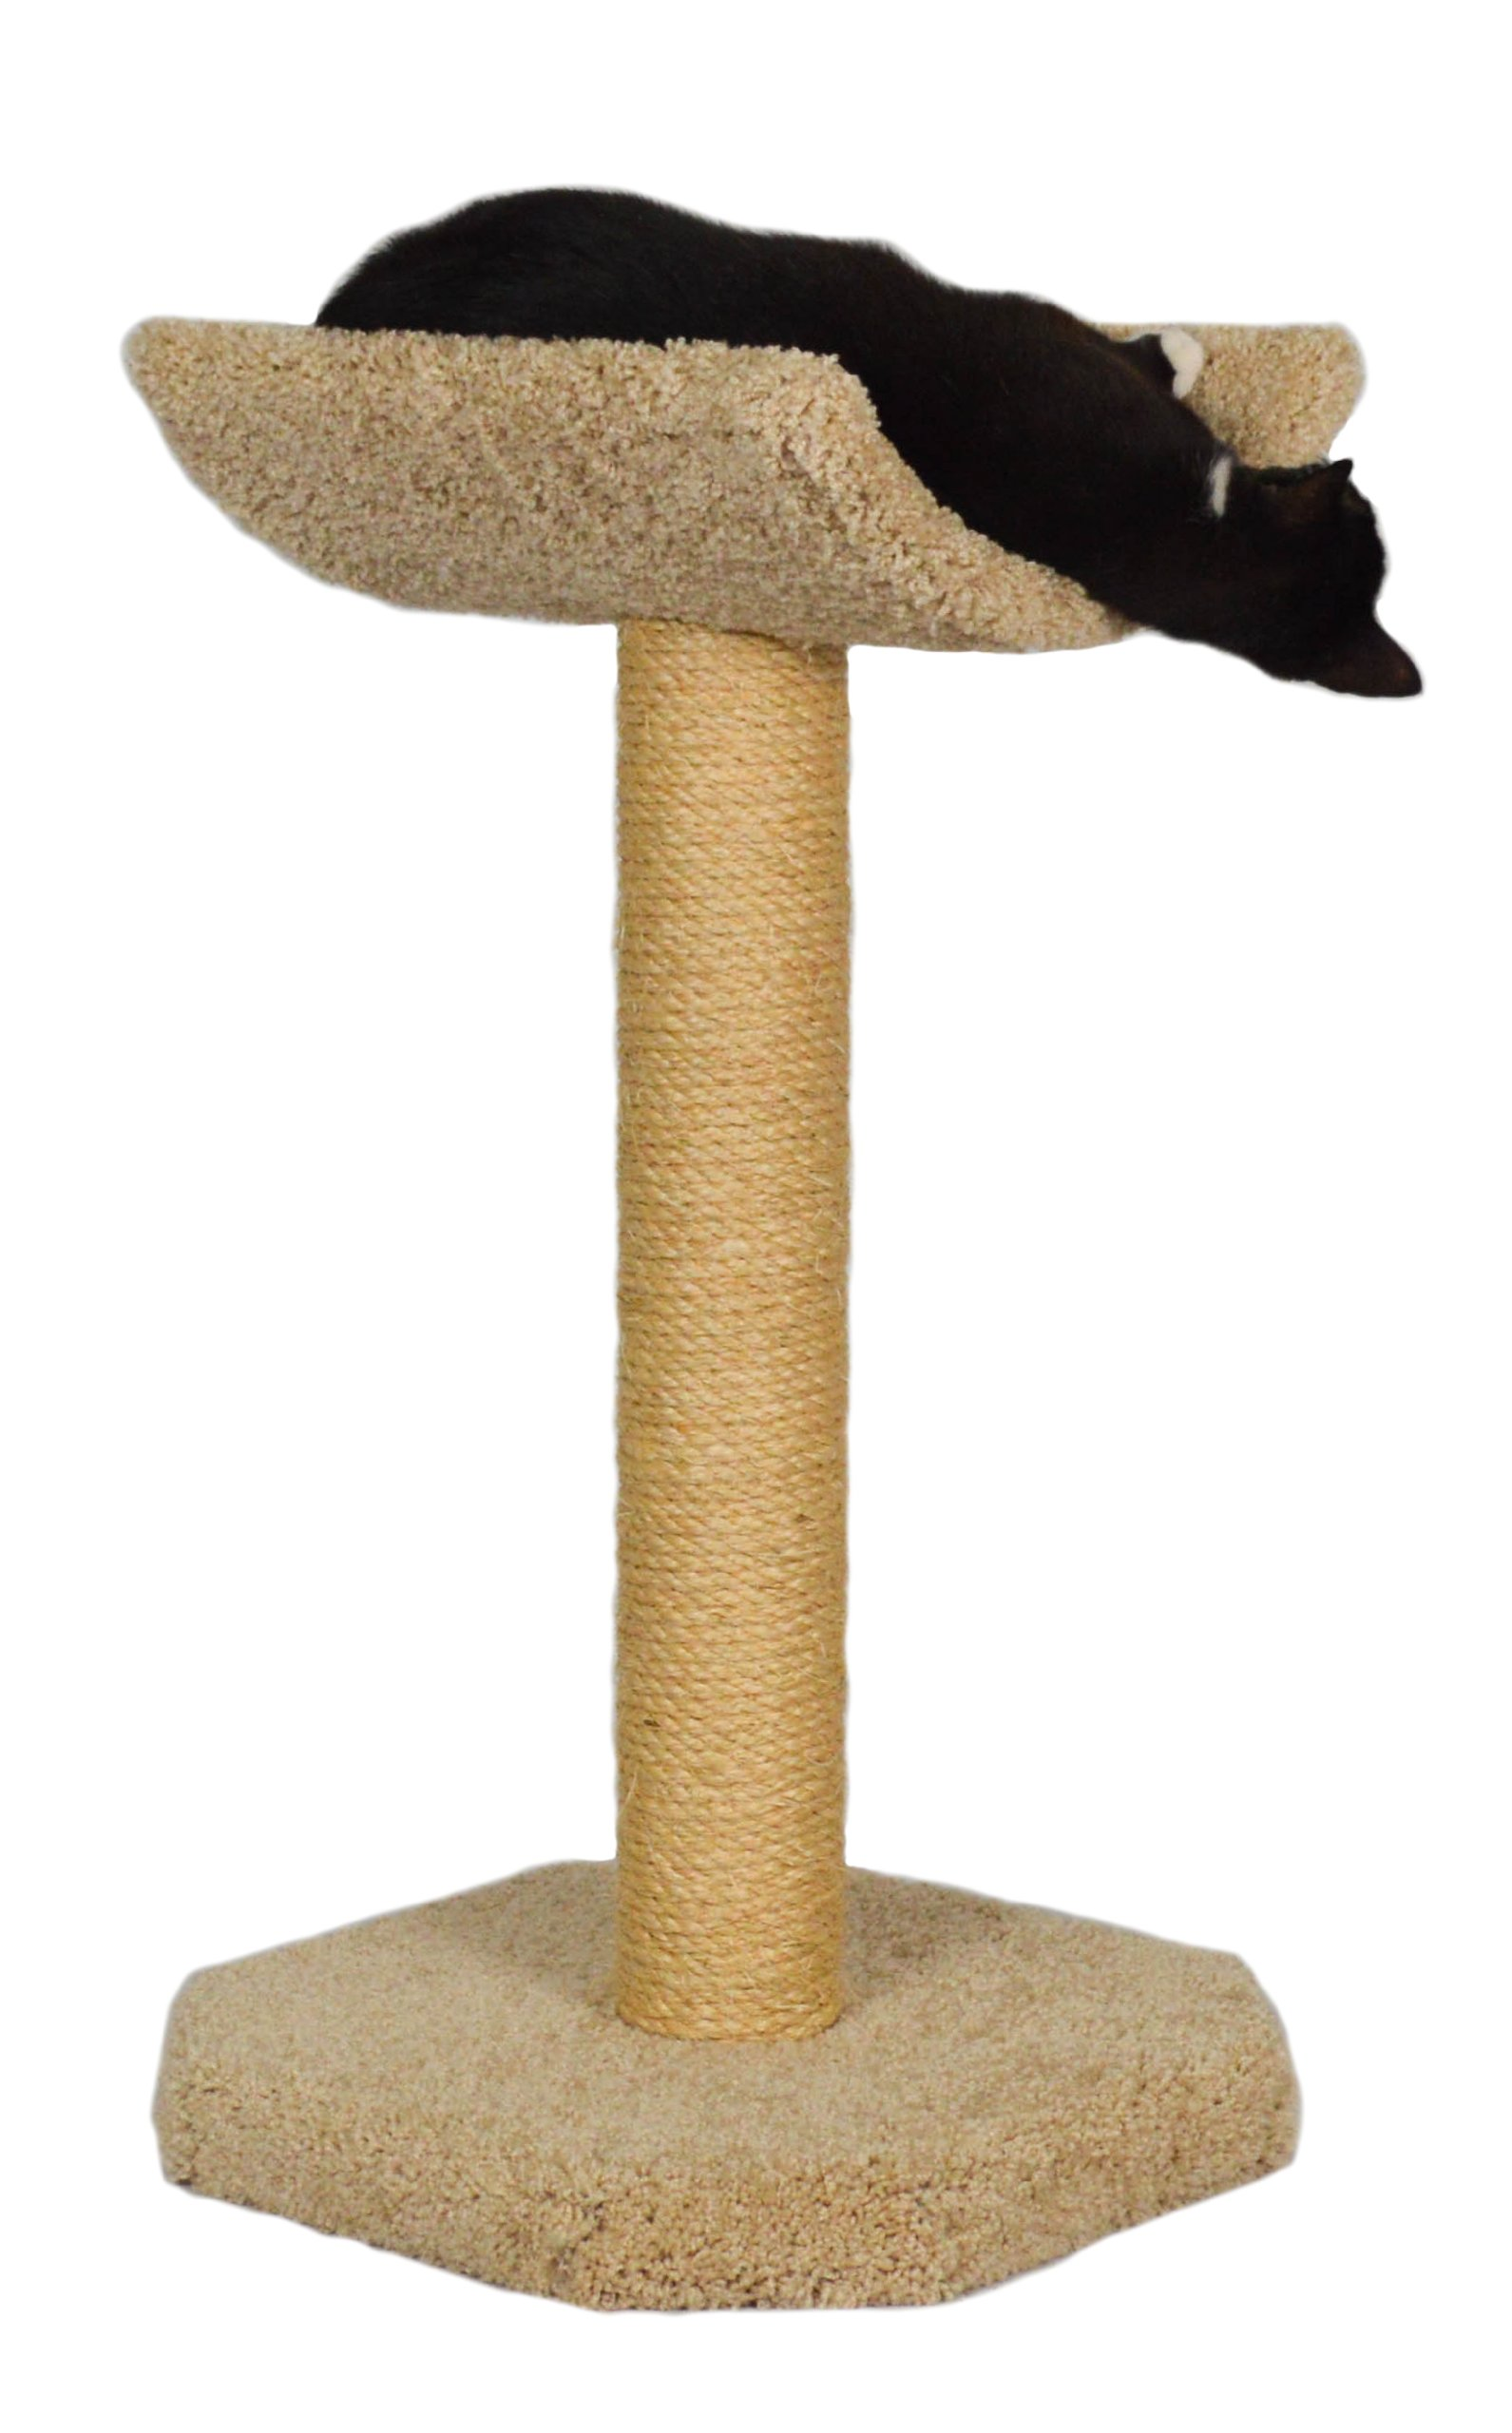 Molly and Friends ''Kitty Cot'' Premium Handmade One Tier Sisal Cat Scratching Post Furniture with Cradle, Model Scr/c, Beige